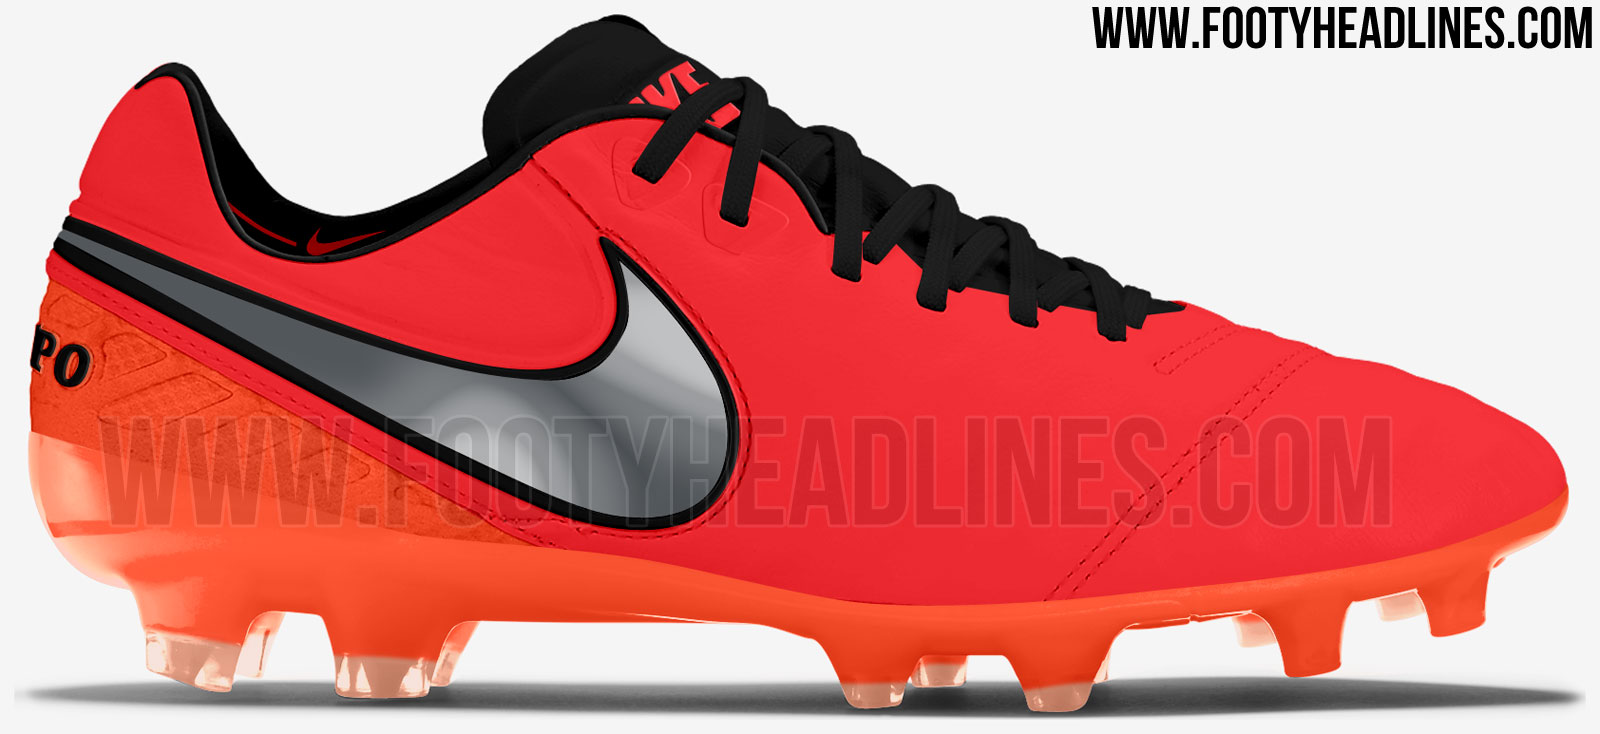 red nike tiempo legend 6 2016 boots leaked footy headlines. Black Bedroom Furniture Sets. Home Design Ideas